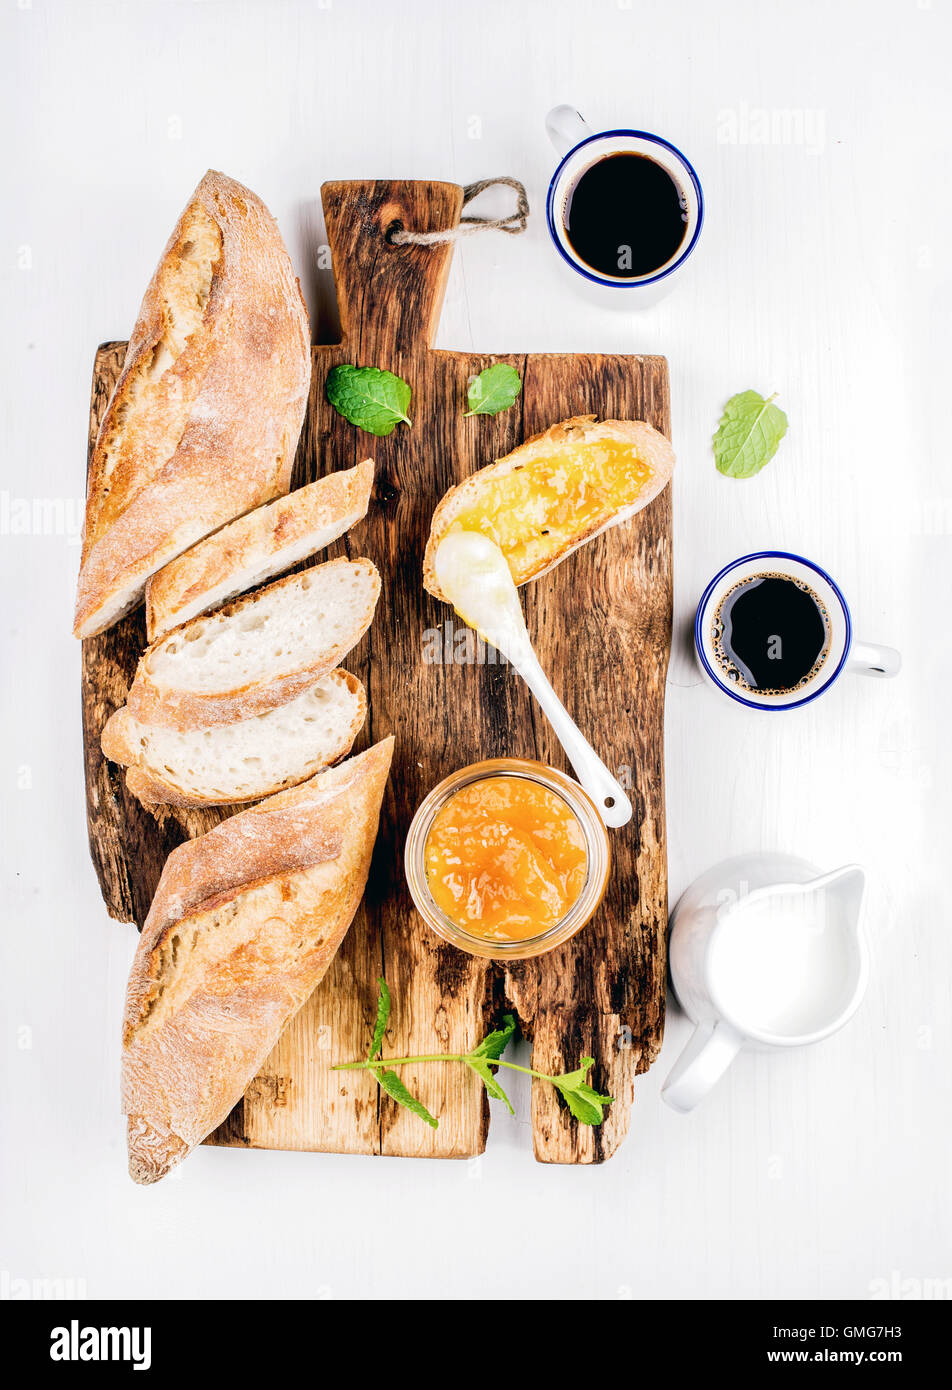 Breakfast set. Baguette, orange jam and coffee in cups on rustic wooden board over white painted background - Stock Image